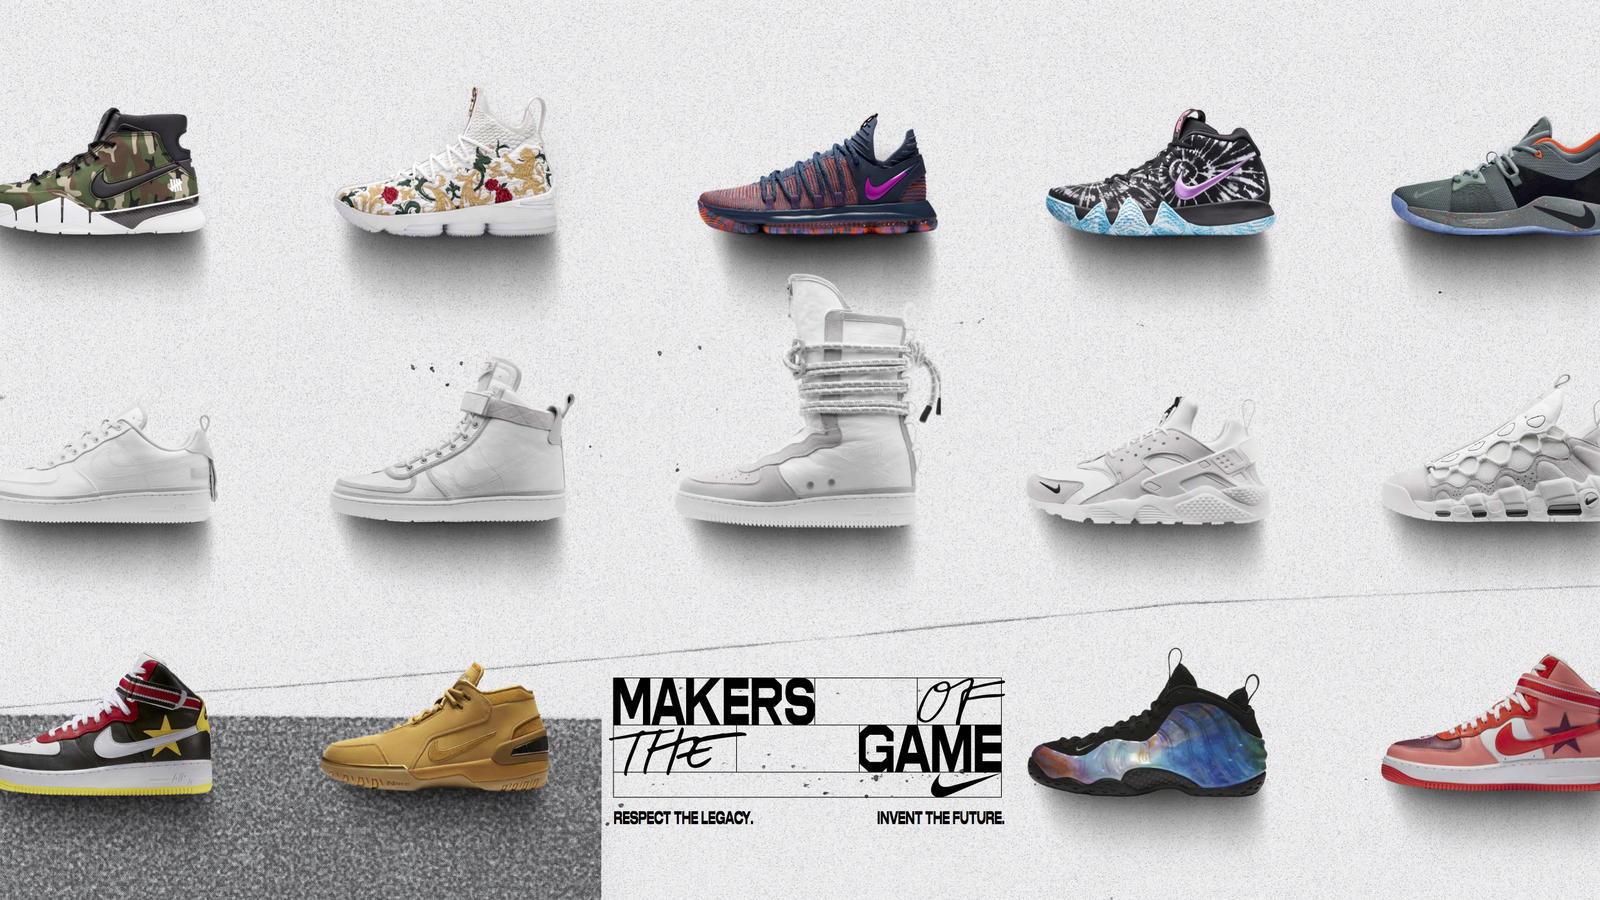 First row, from left: Kobe Protro x Undefeated, LeBron x KITH, KDX ASW,  Kyrie 4 ASW and PG2 ASW. Second row: 90/10 Pack. Third row, from left: Nike  x RT Air ...